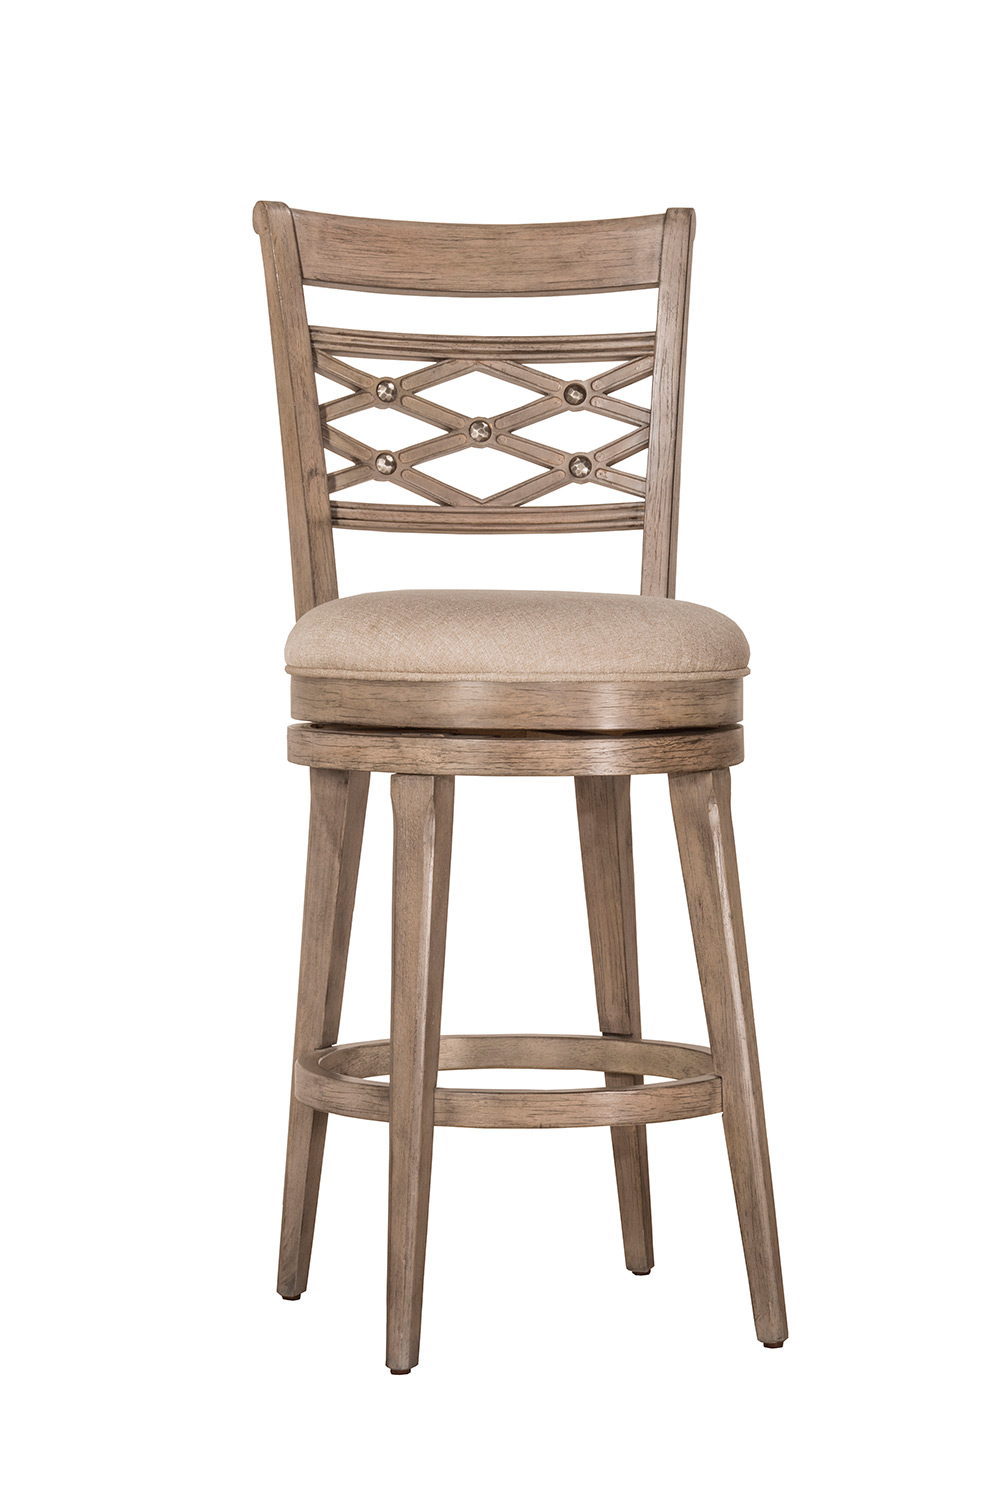 Hillsdale Chesney Swivel Counter Stool - Weathered Gray